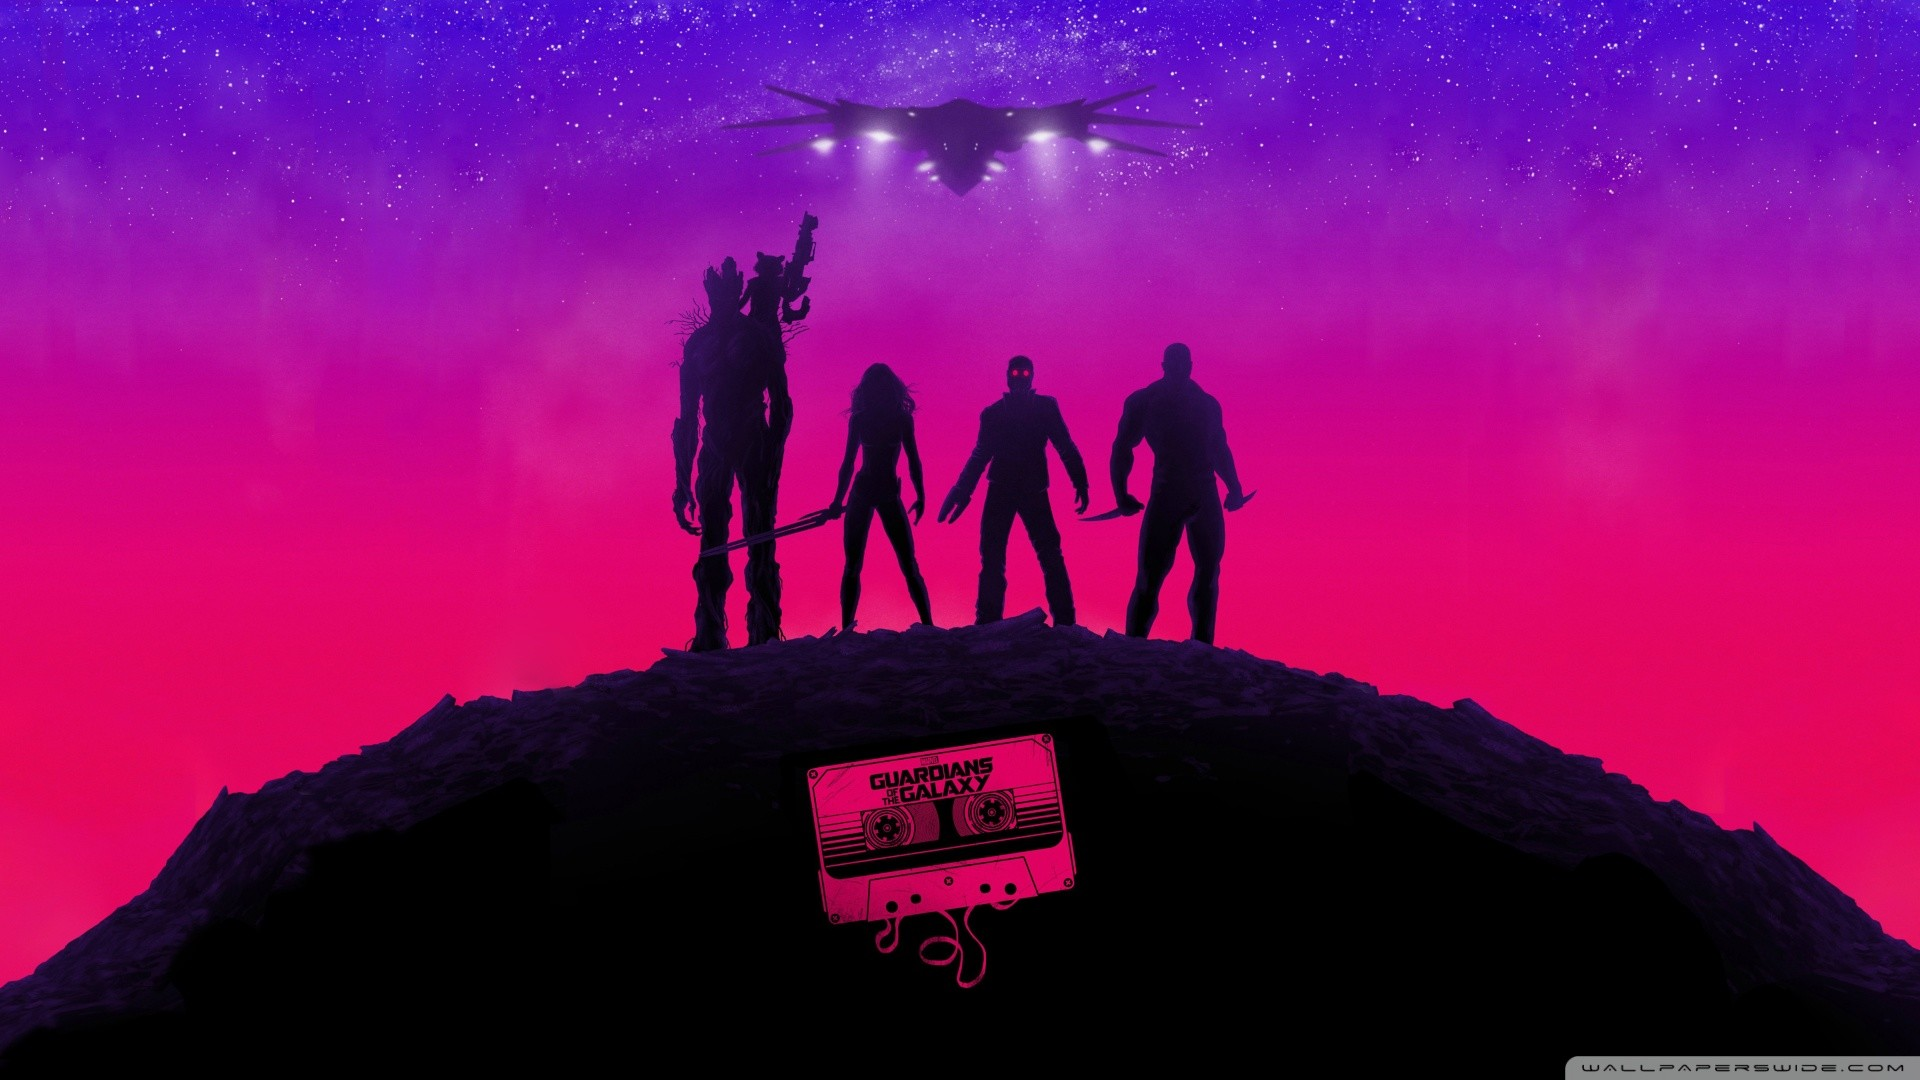 1920x1080 Guardians Of The Galaxy Official Poster wallpaper. | HD Wallpapers |  Pinterest | Wallpaper